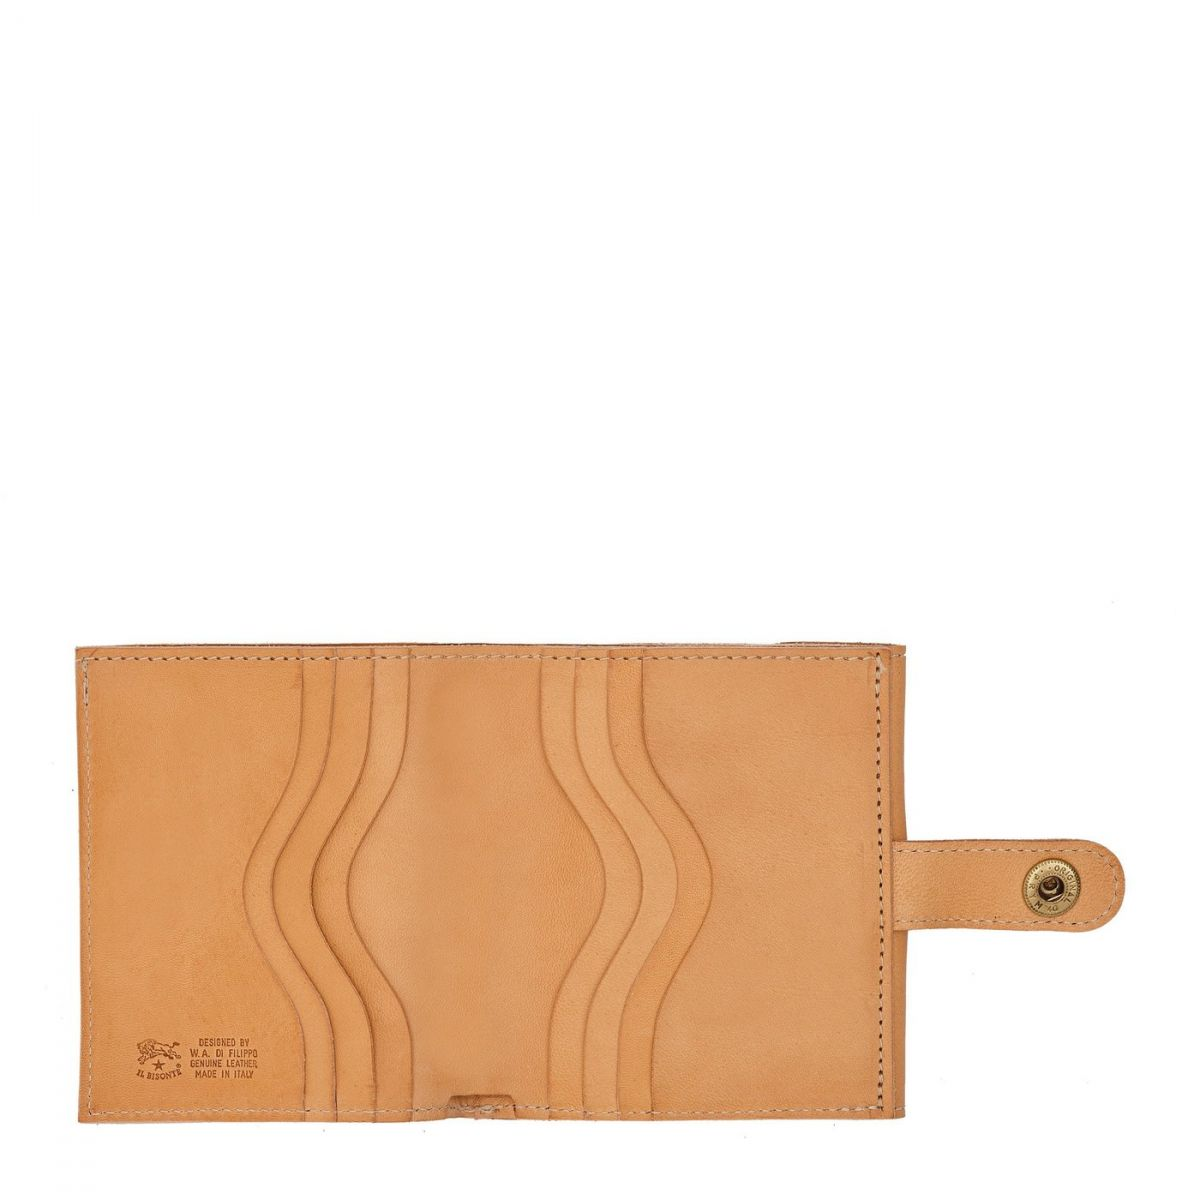 Men's Bi-Fold Wallet  in Cowhide Double Leather SBW030 color Natural | Details